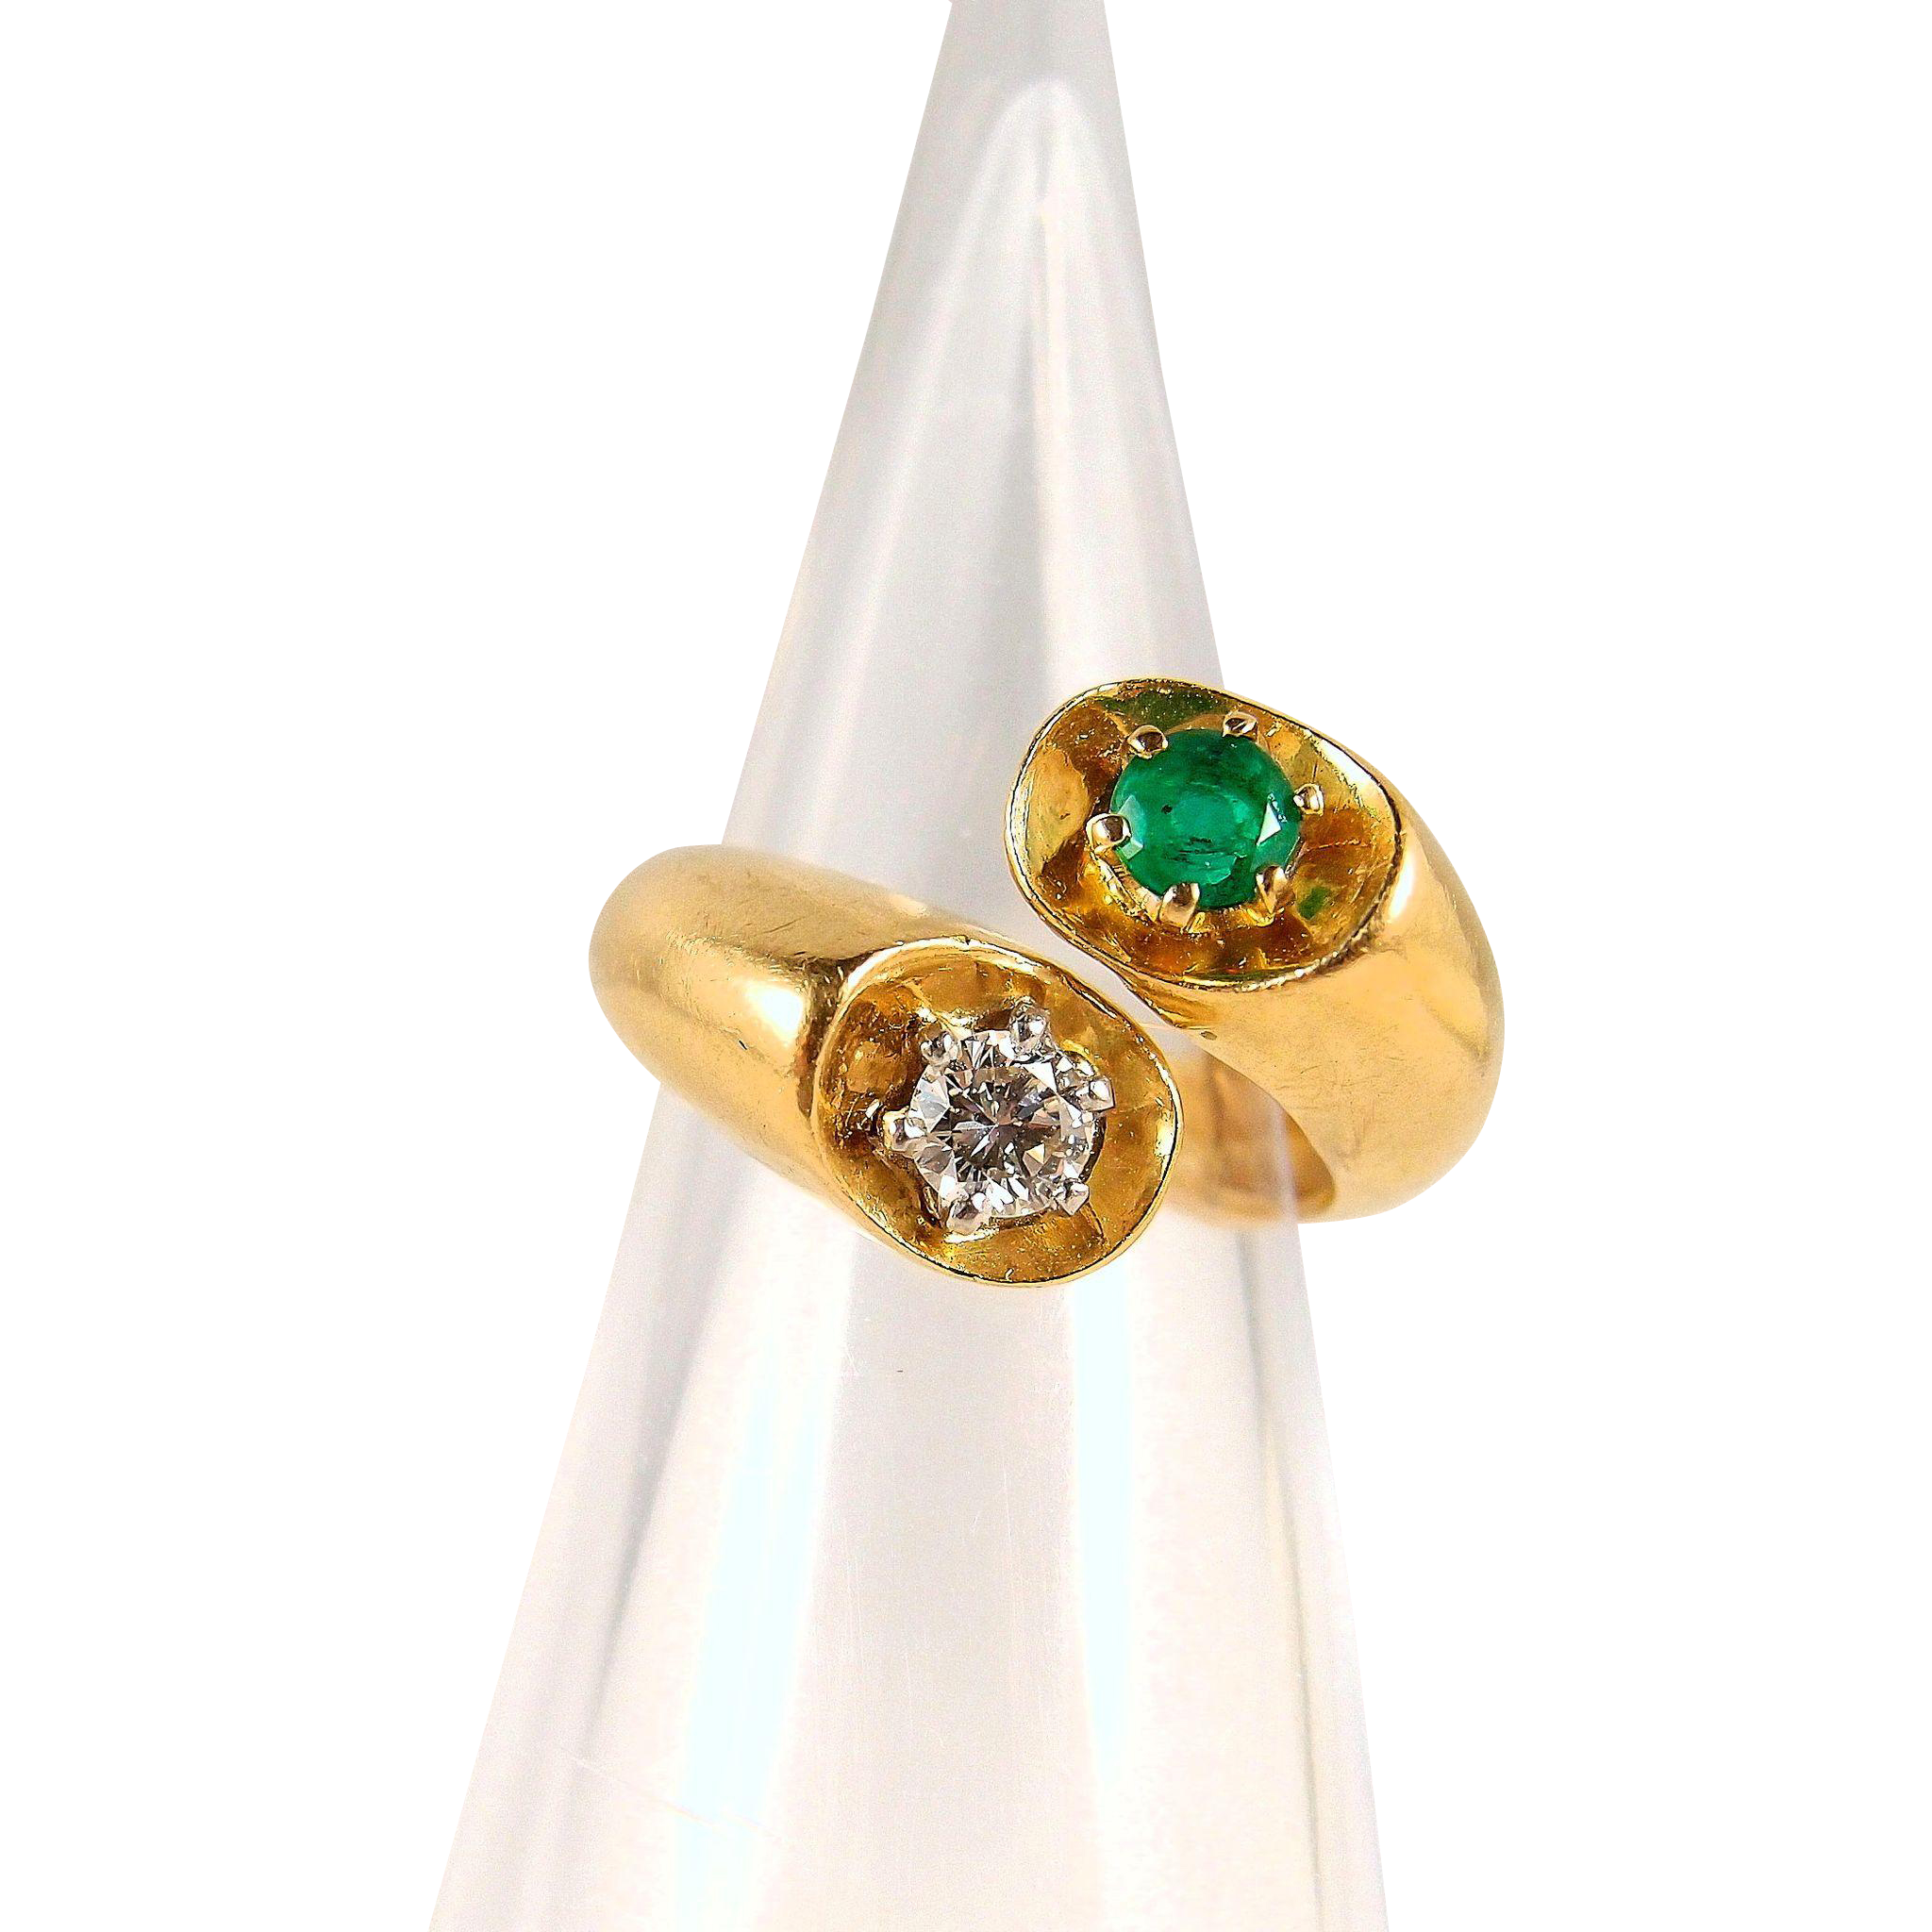 white rings celtic ring emerald gold diamond and emeral